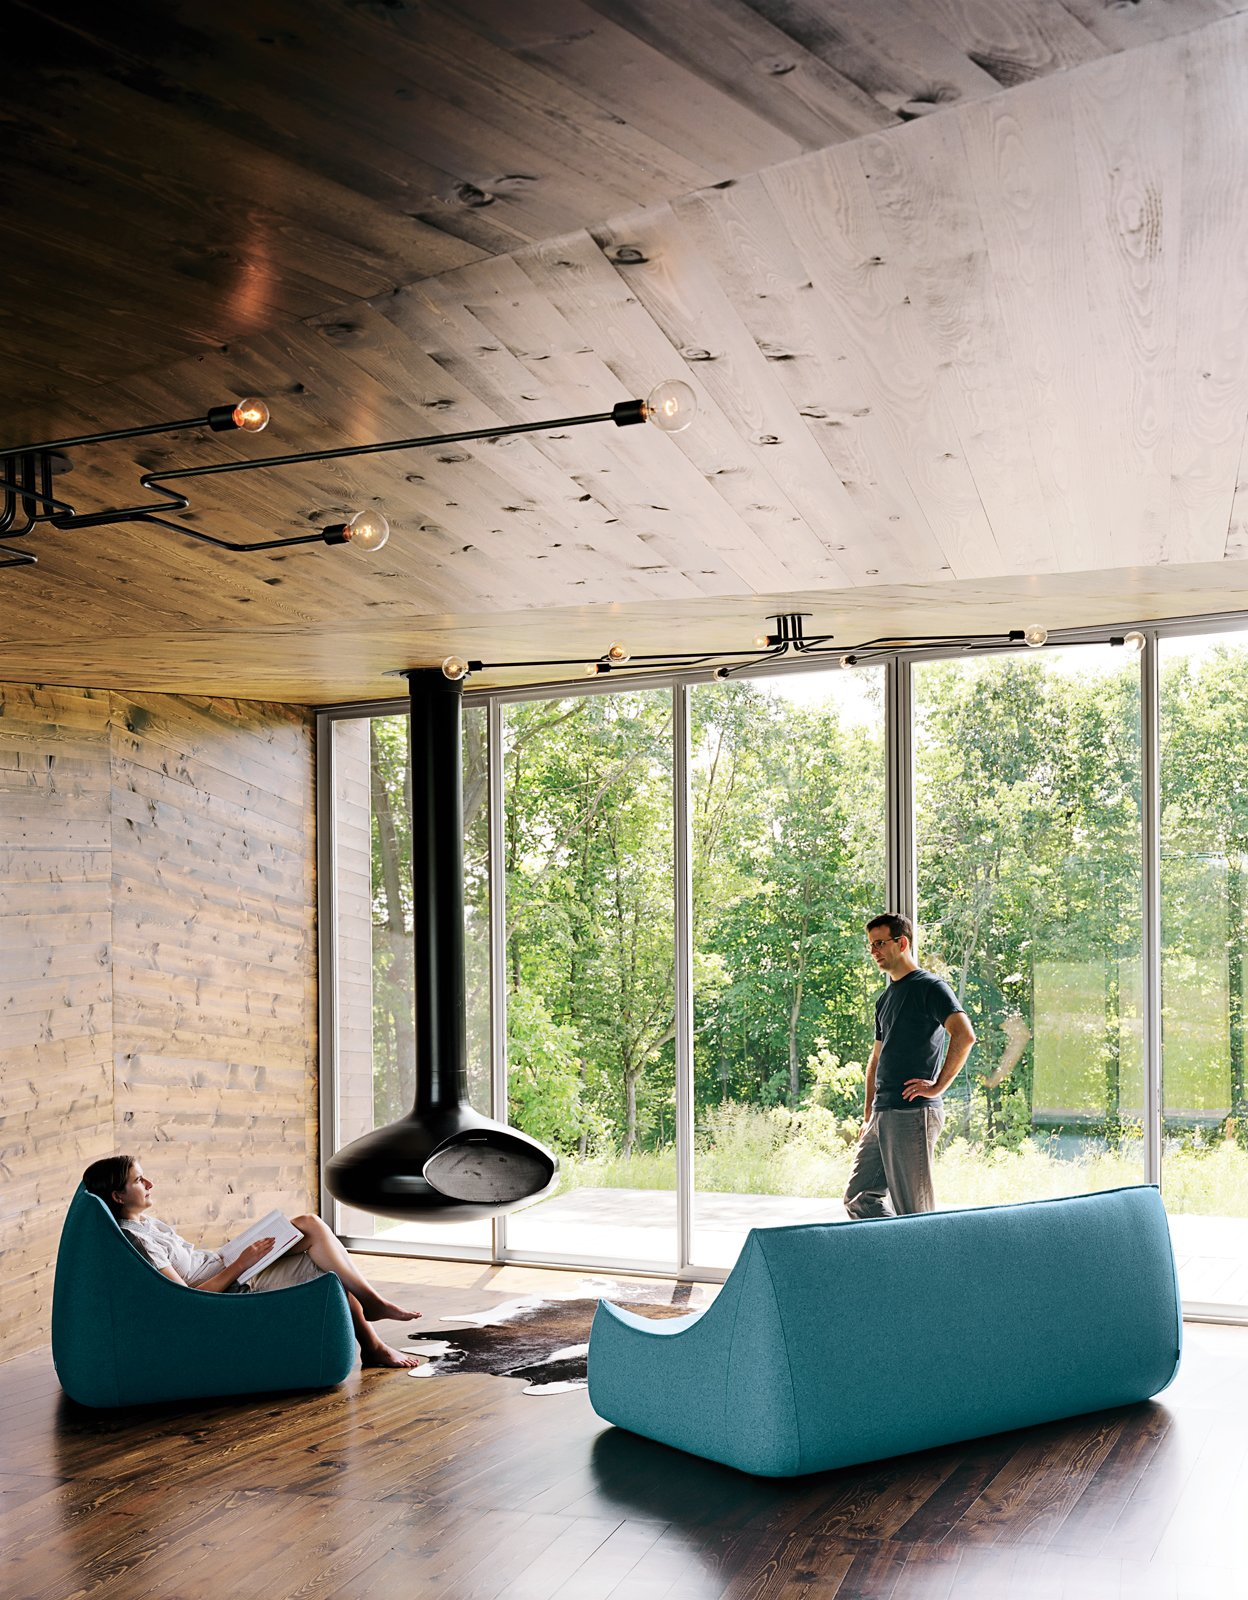 New Grass Roots  With its corrugated-aluminum exterior, X House in Hennepin, Illinois, was built to resemble rural silos. The inside, however, features rich wood paneling and spare furnishings. From floor-to-ceiling windows, the residents have a view of the surrounding grassland.  New Grass Roots by Dwell from Minimalist Living Rooms